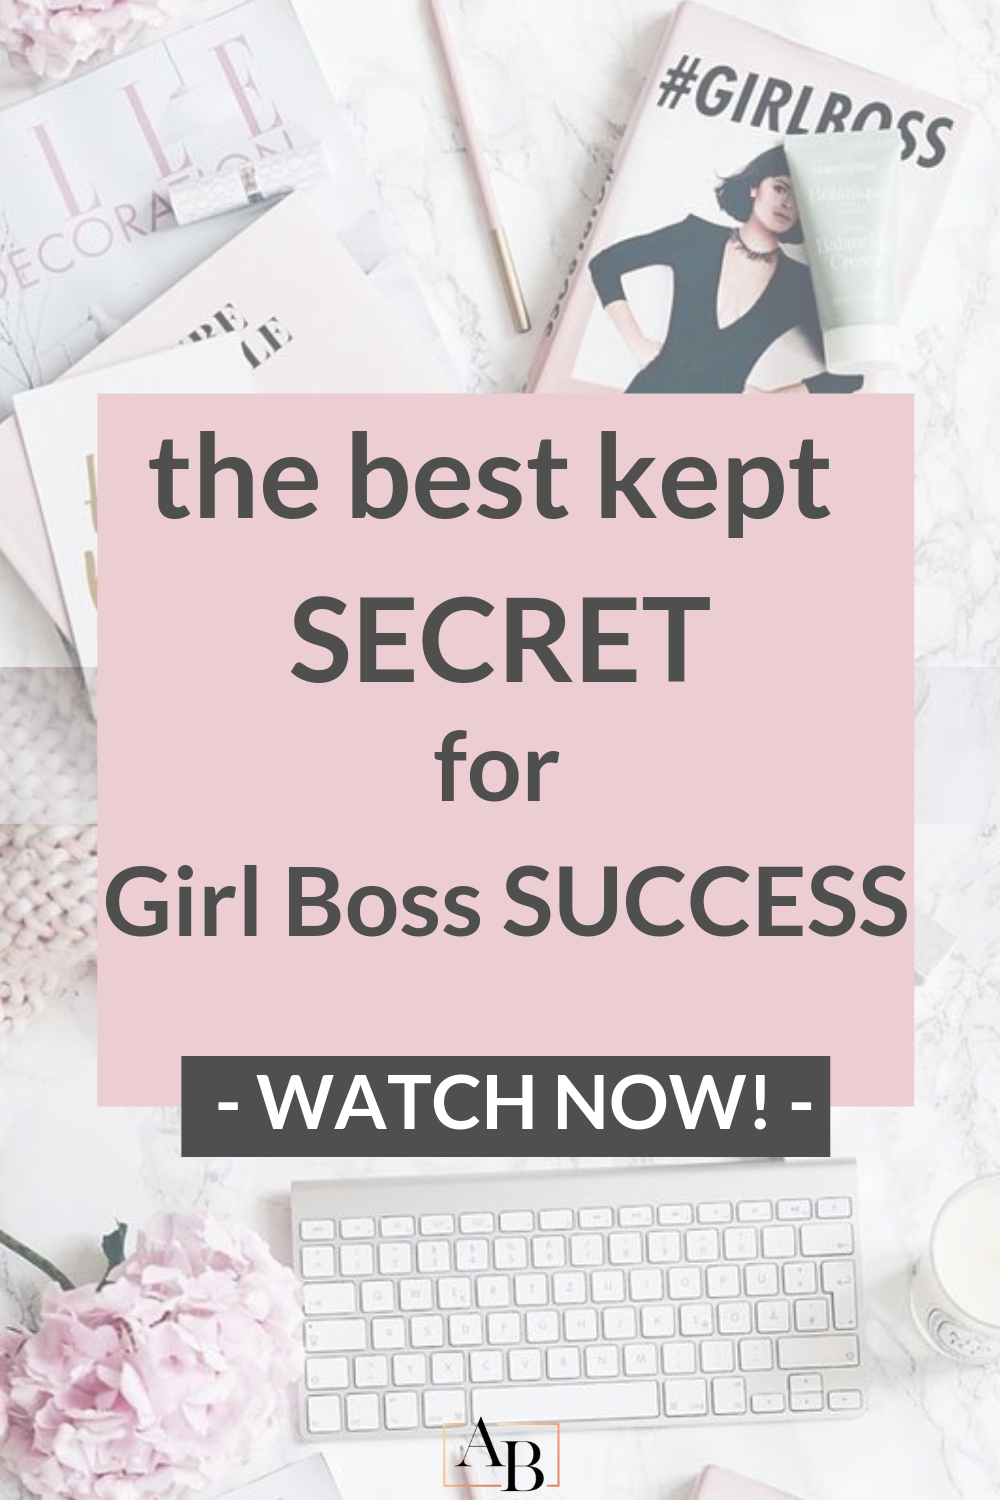 Curious how Girl Boss ladies get their mindset in the right place? Well, here is how! The best kept secret for success seams simpel, but its extremely effective! Let the magic happen!